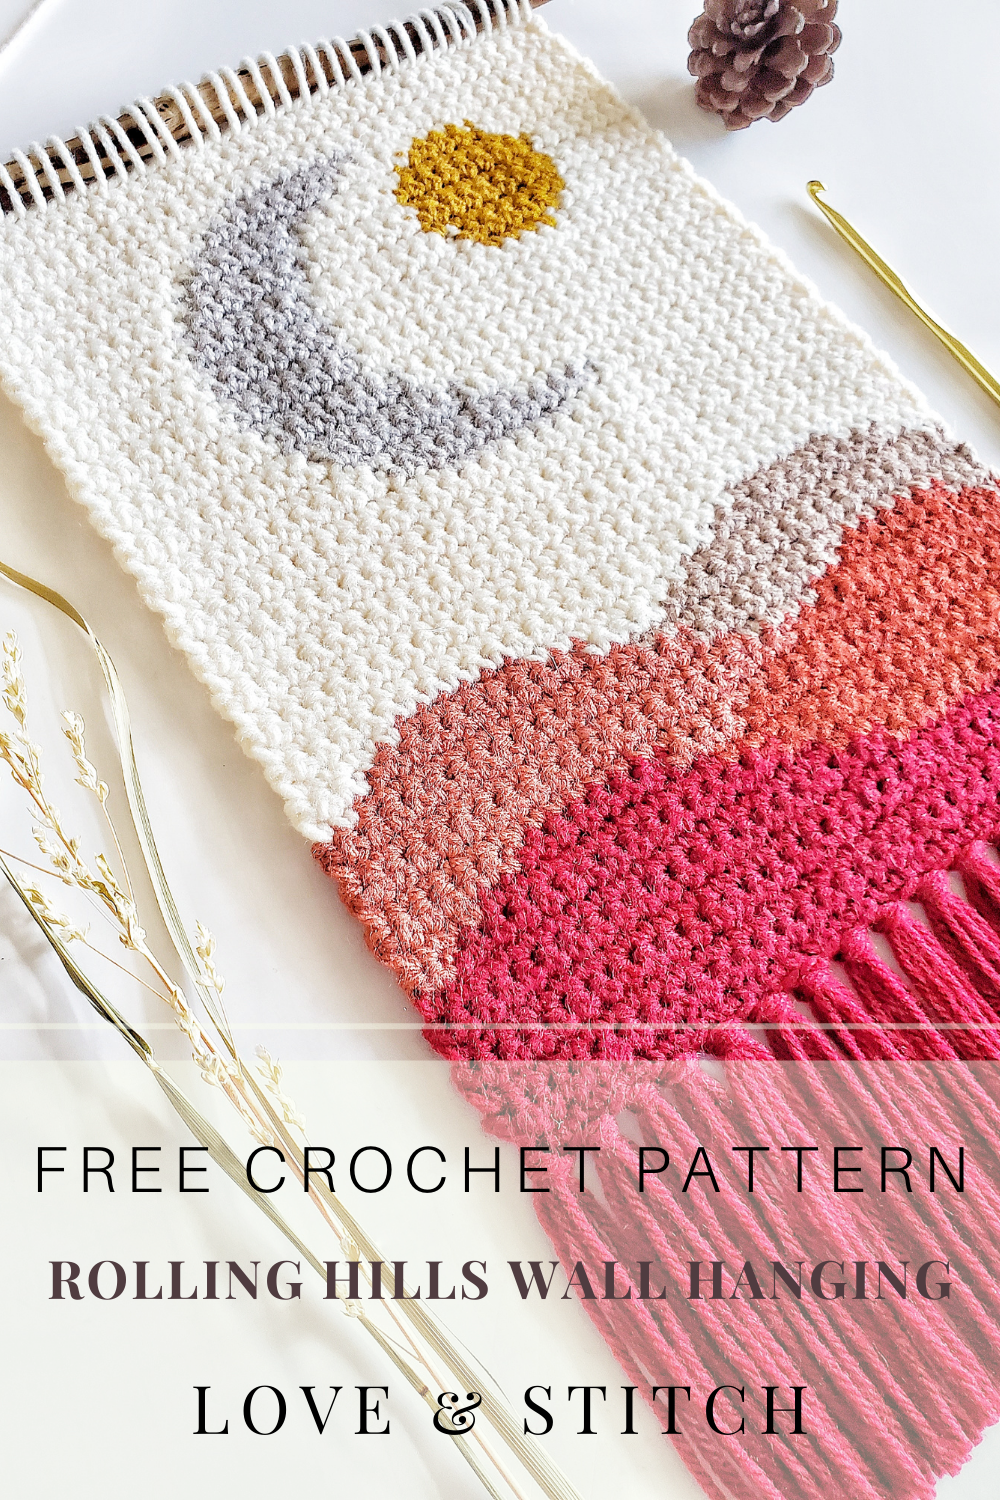 The Rolling Hills Wall Hanging Crochet Pattern